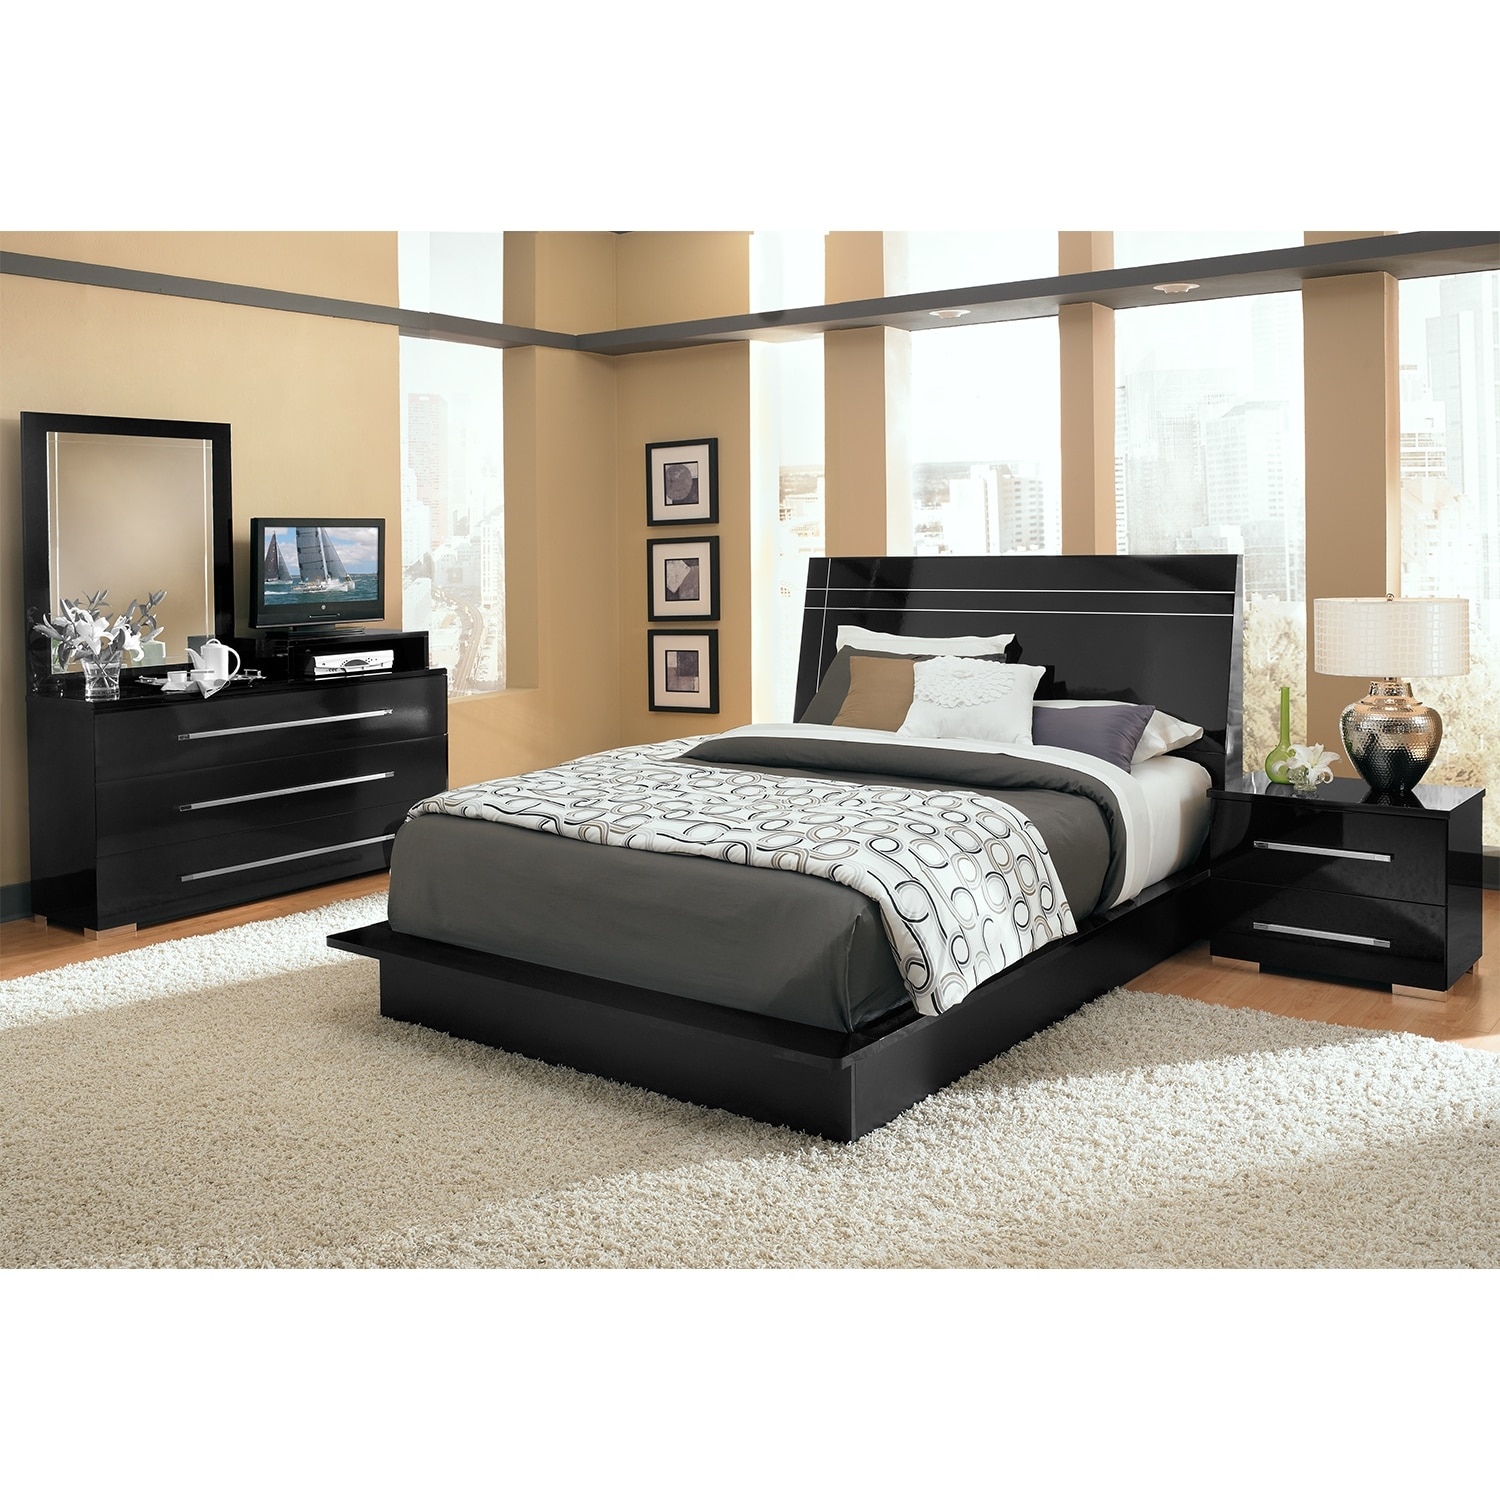 dimora bedroom set dimora 6 king panel bedroom set with media dresser 11428